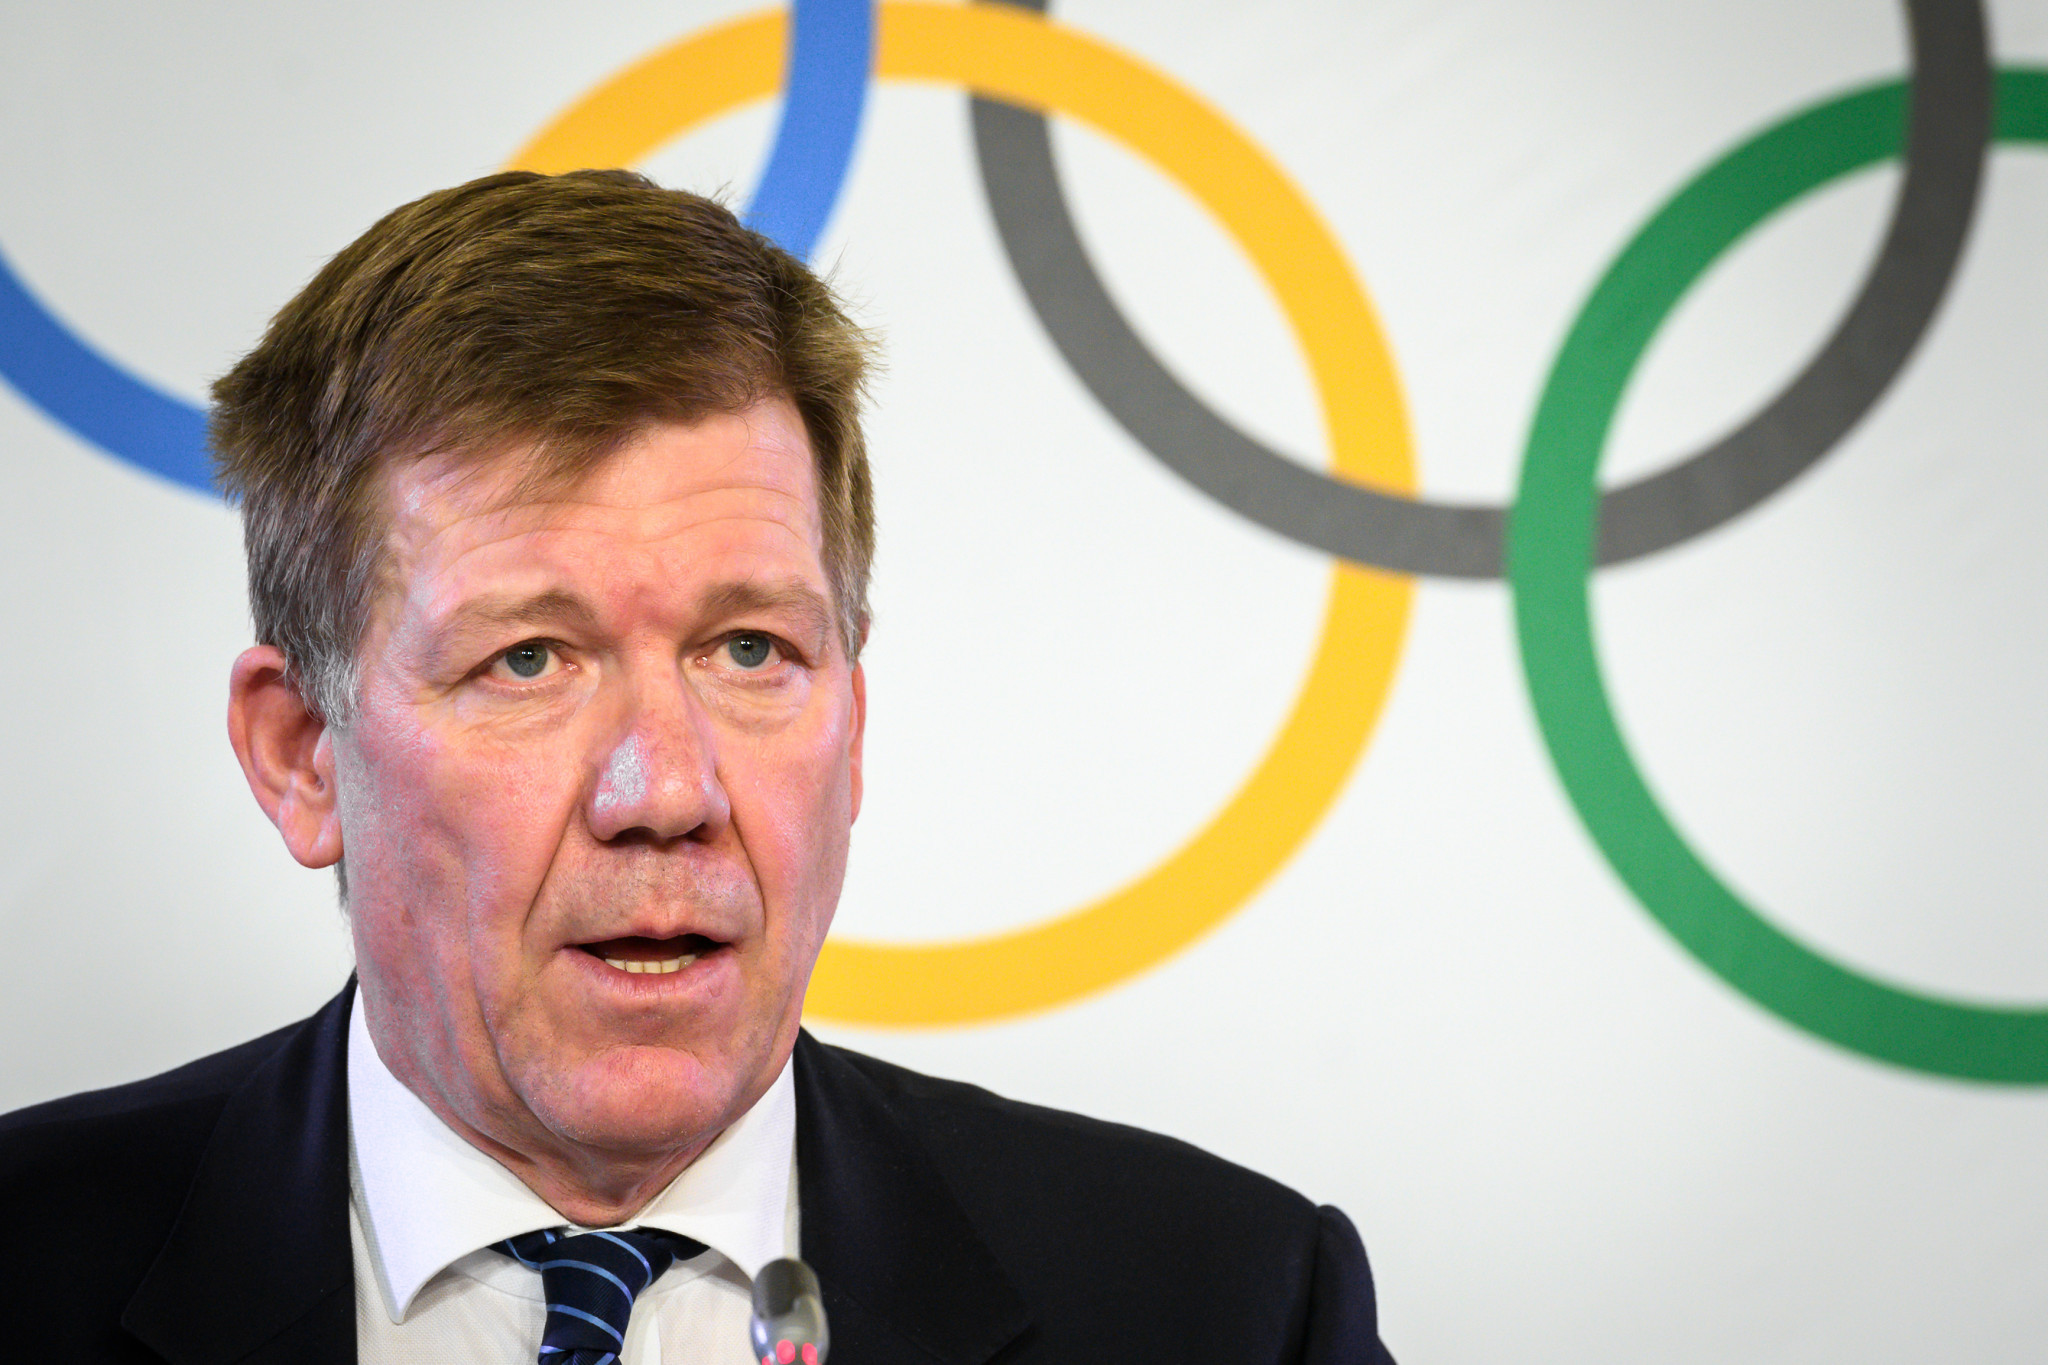 IOC science and medical director Richard Budgett has suggested policies could differ at international and national levels ©Getty Images